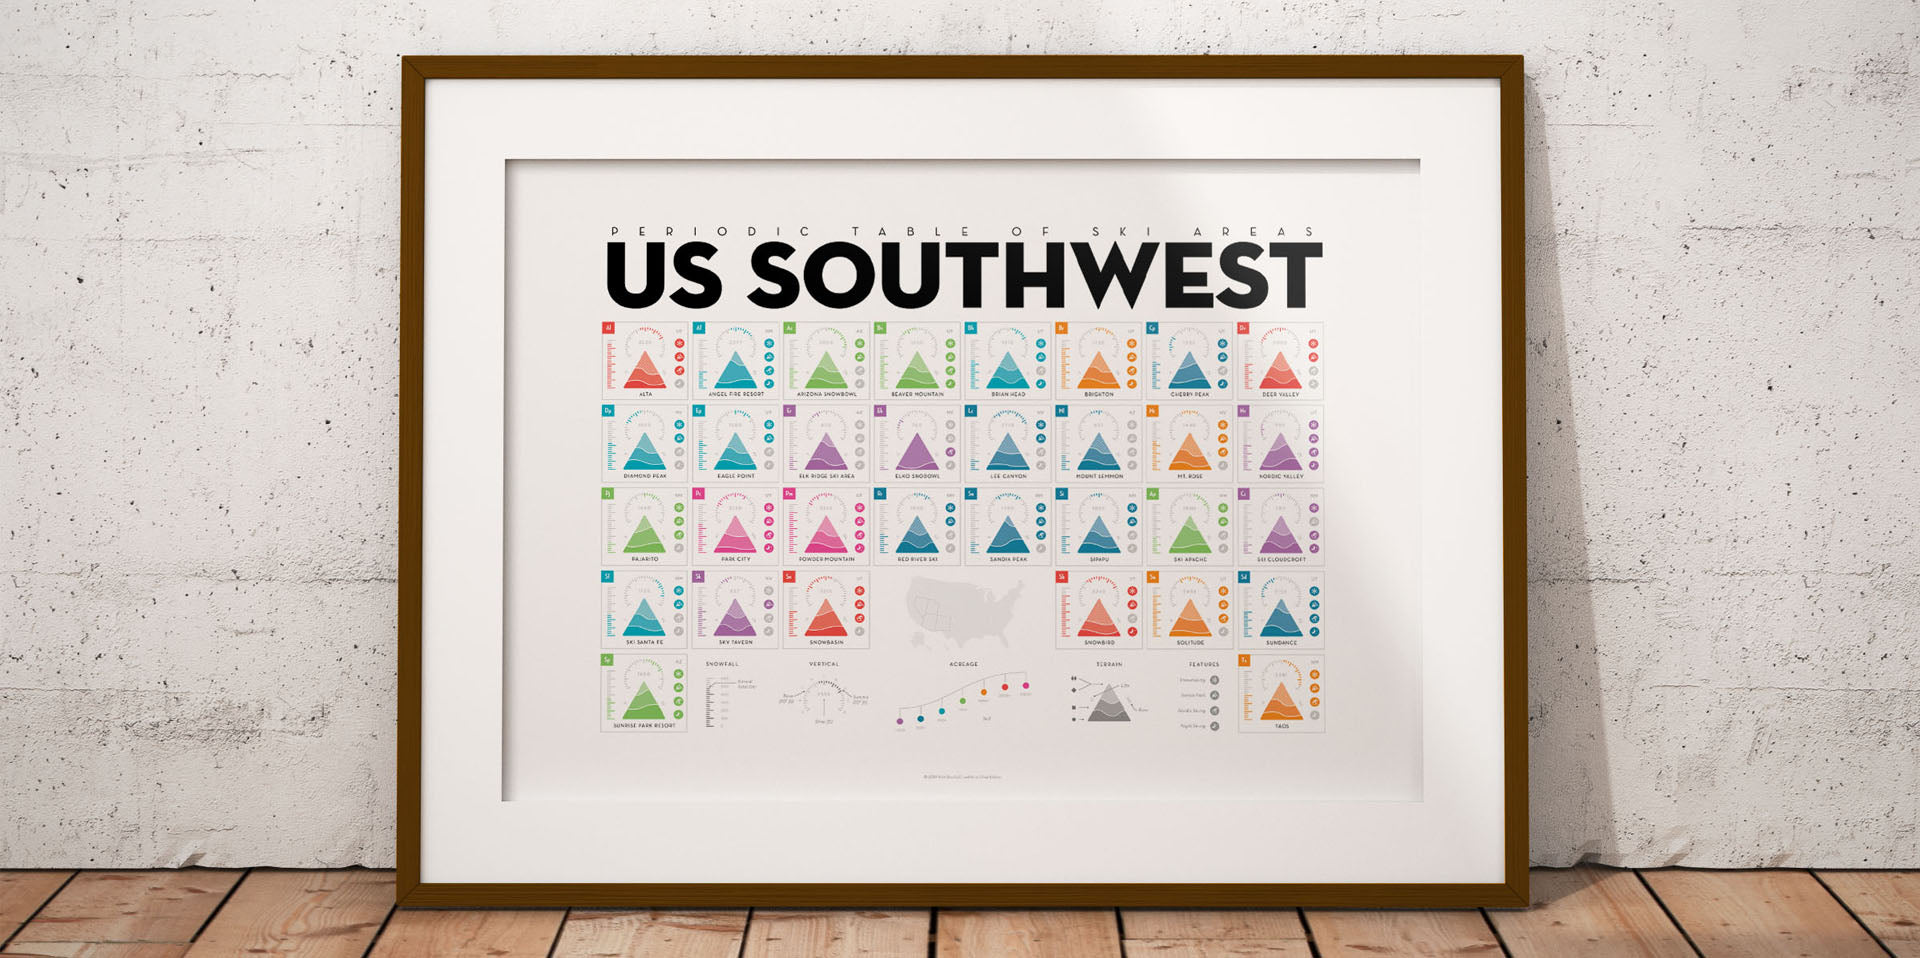 Periodic Table of Ski Areas: US Southwest